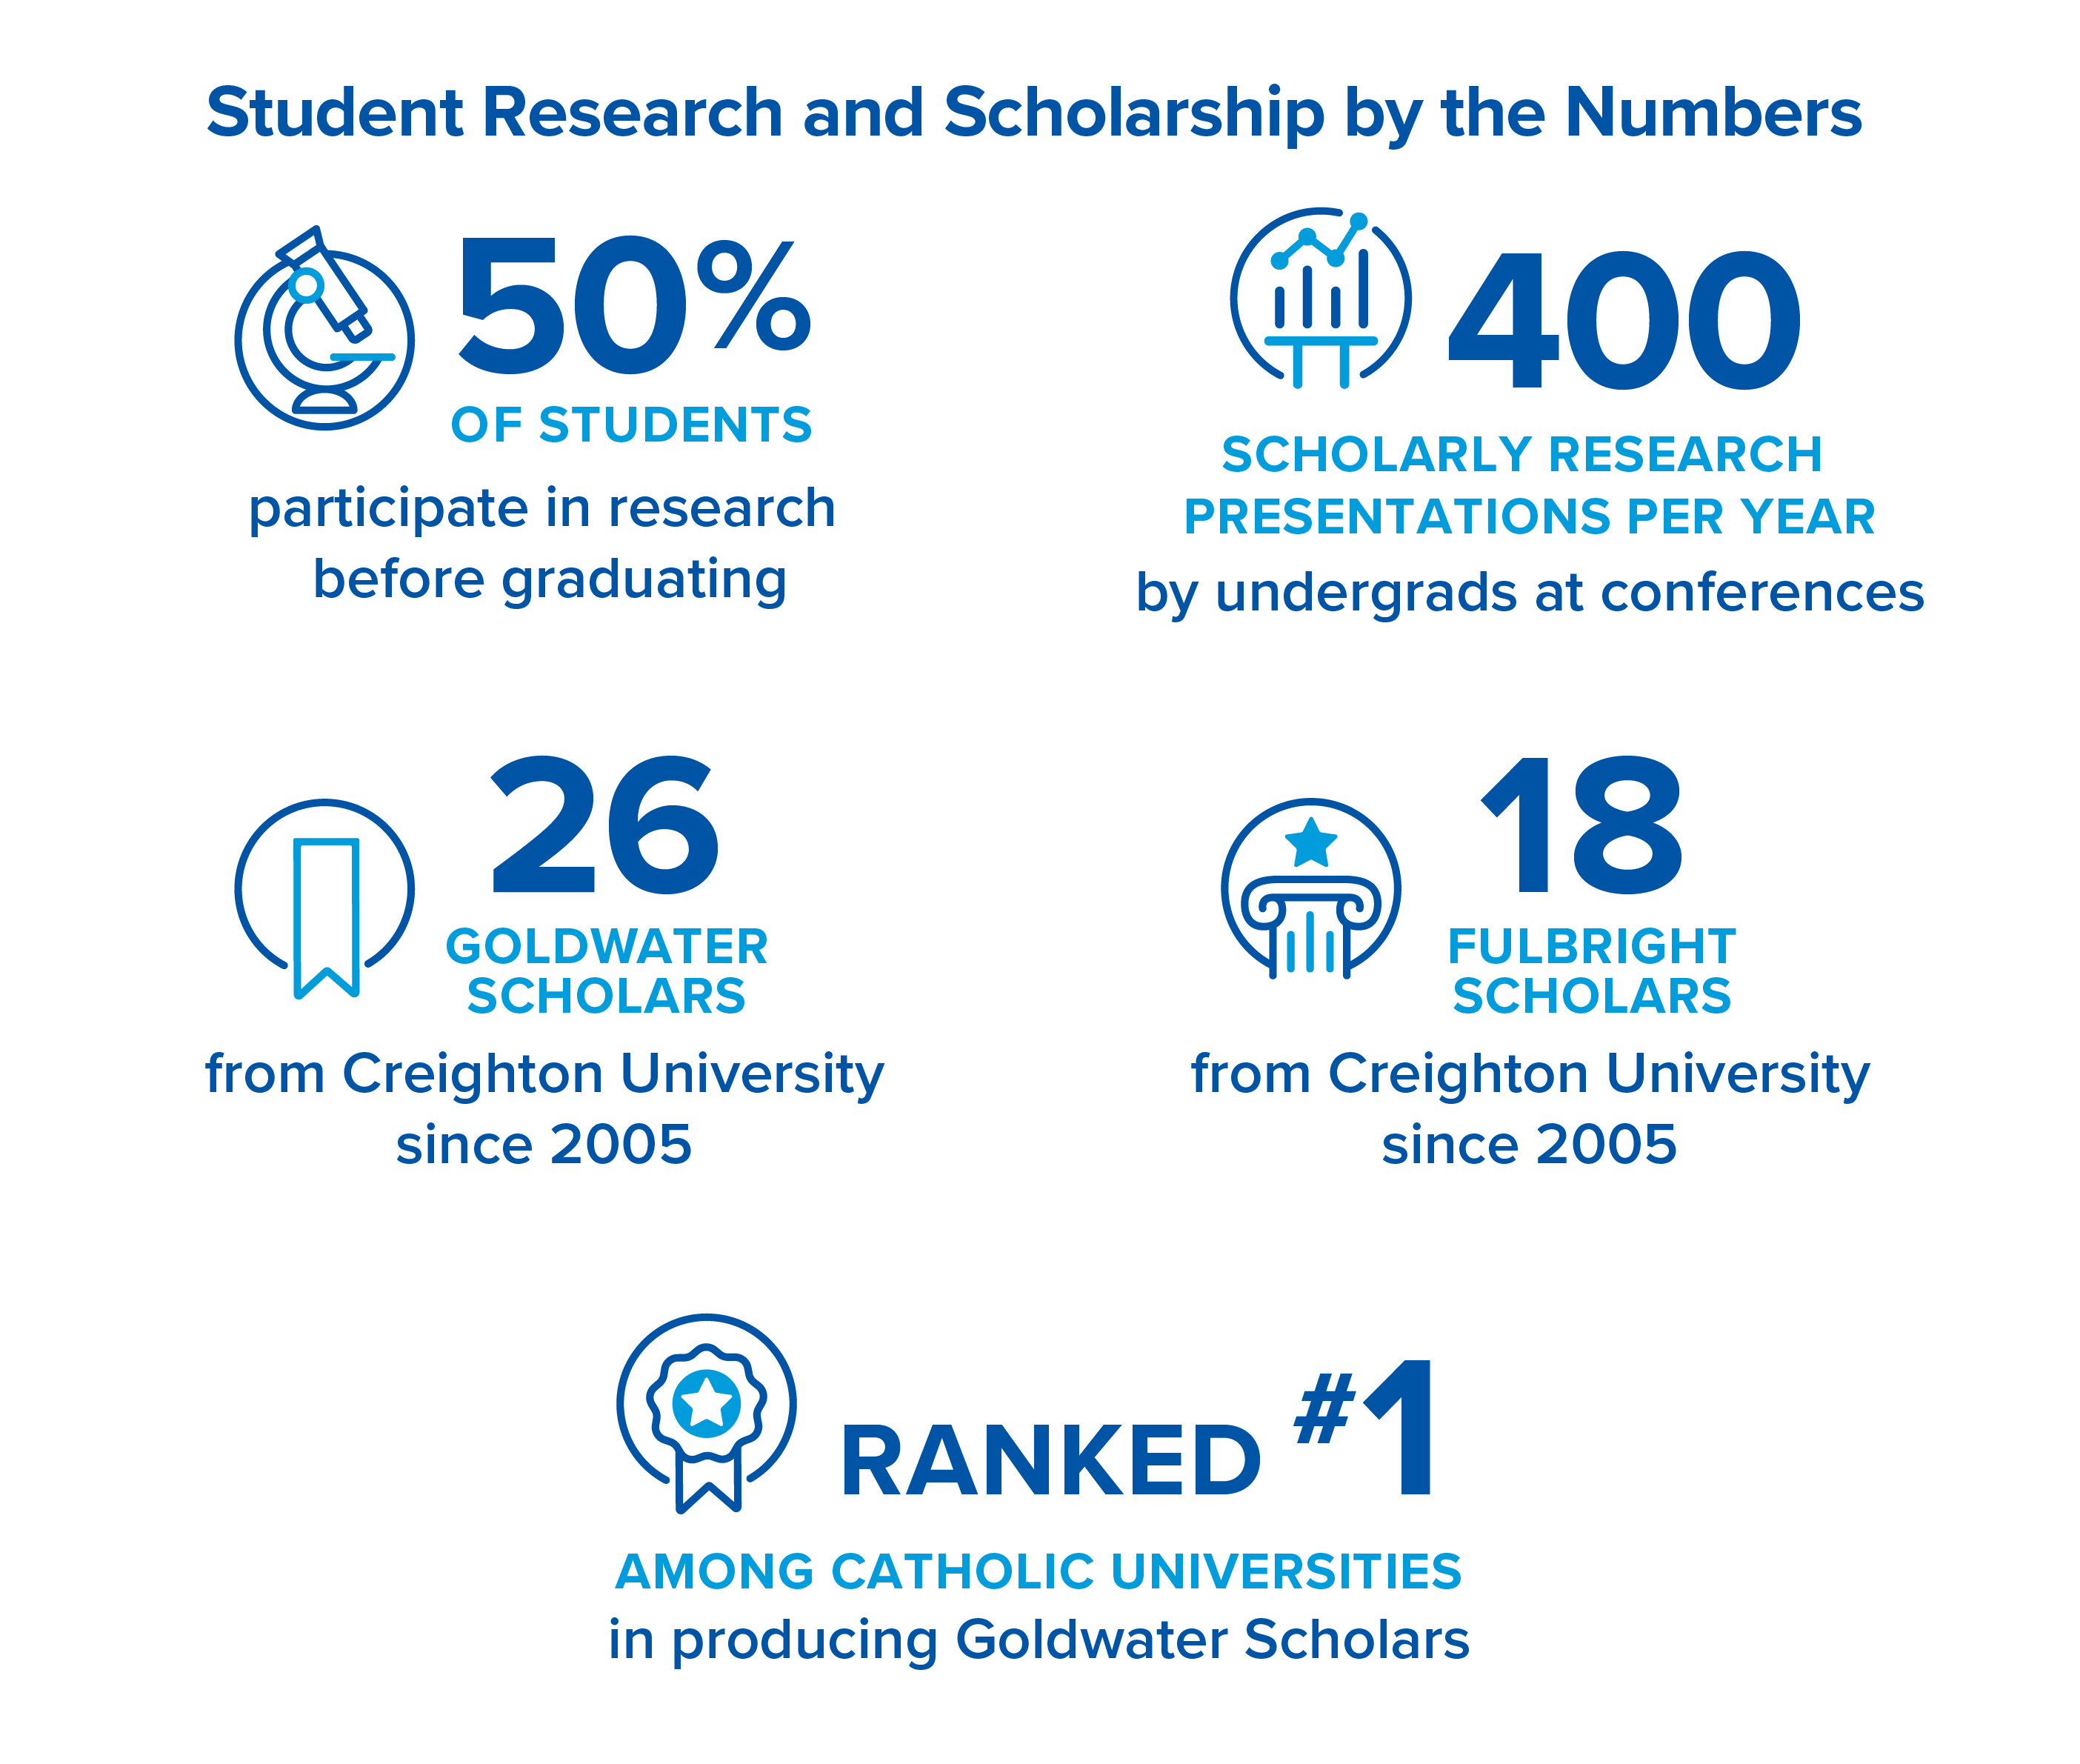 Excellence in Undergraduate Research and Scholarship at Creighton University